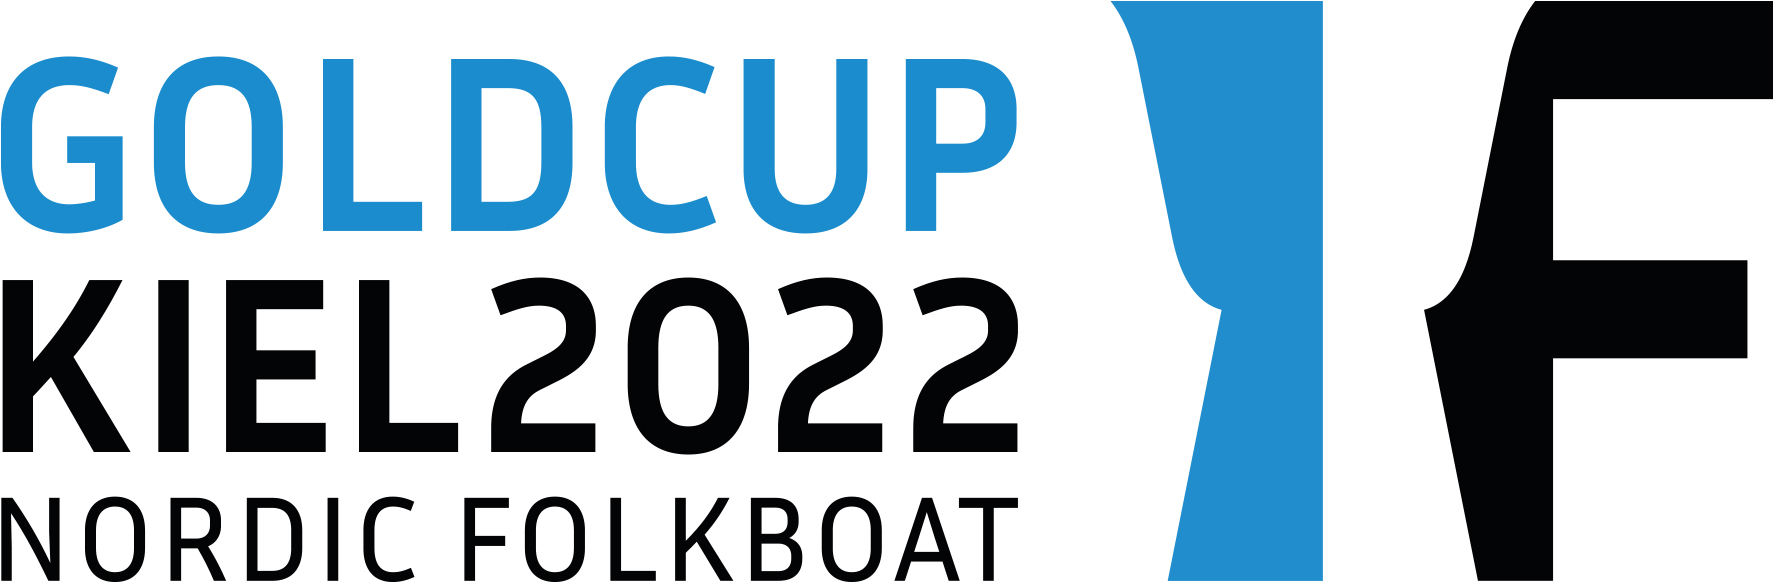 Goldcup2022